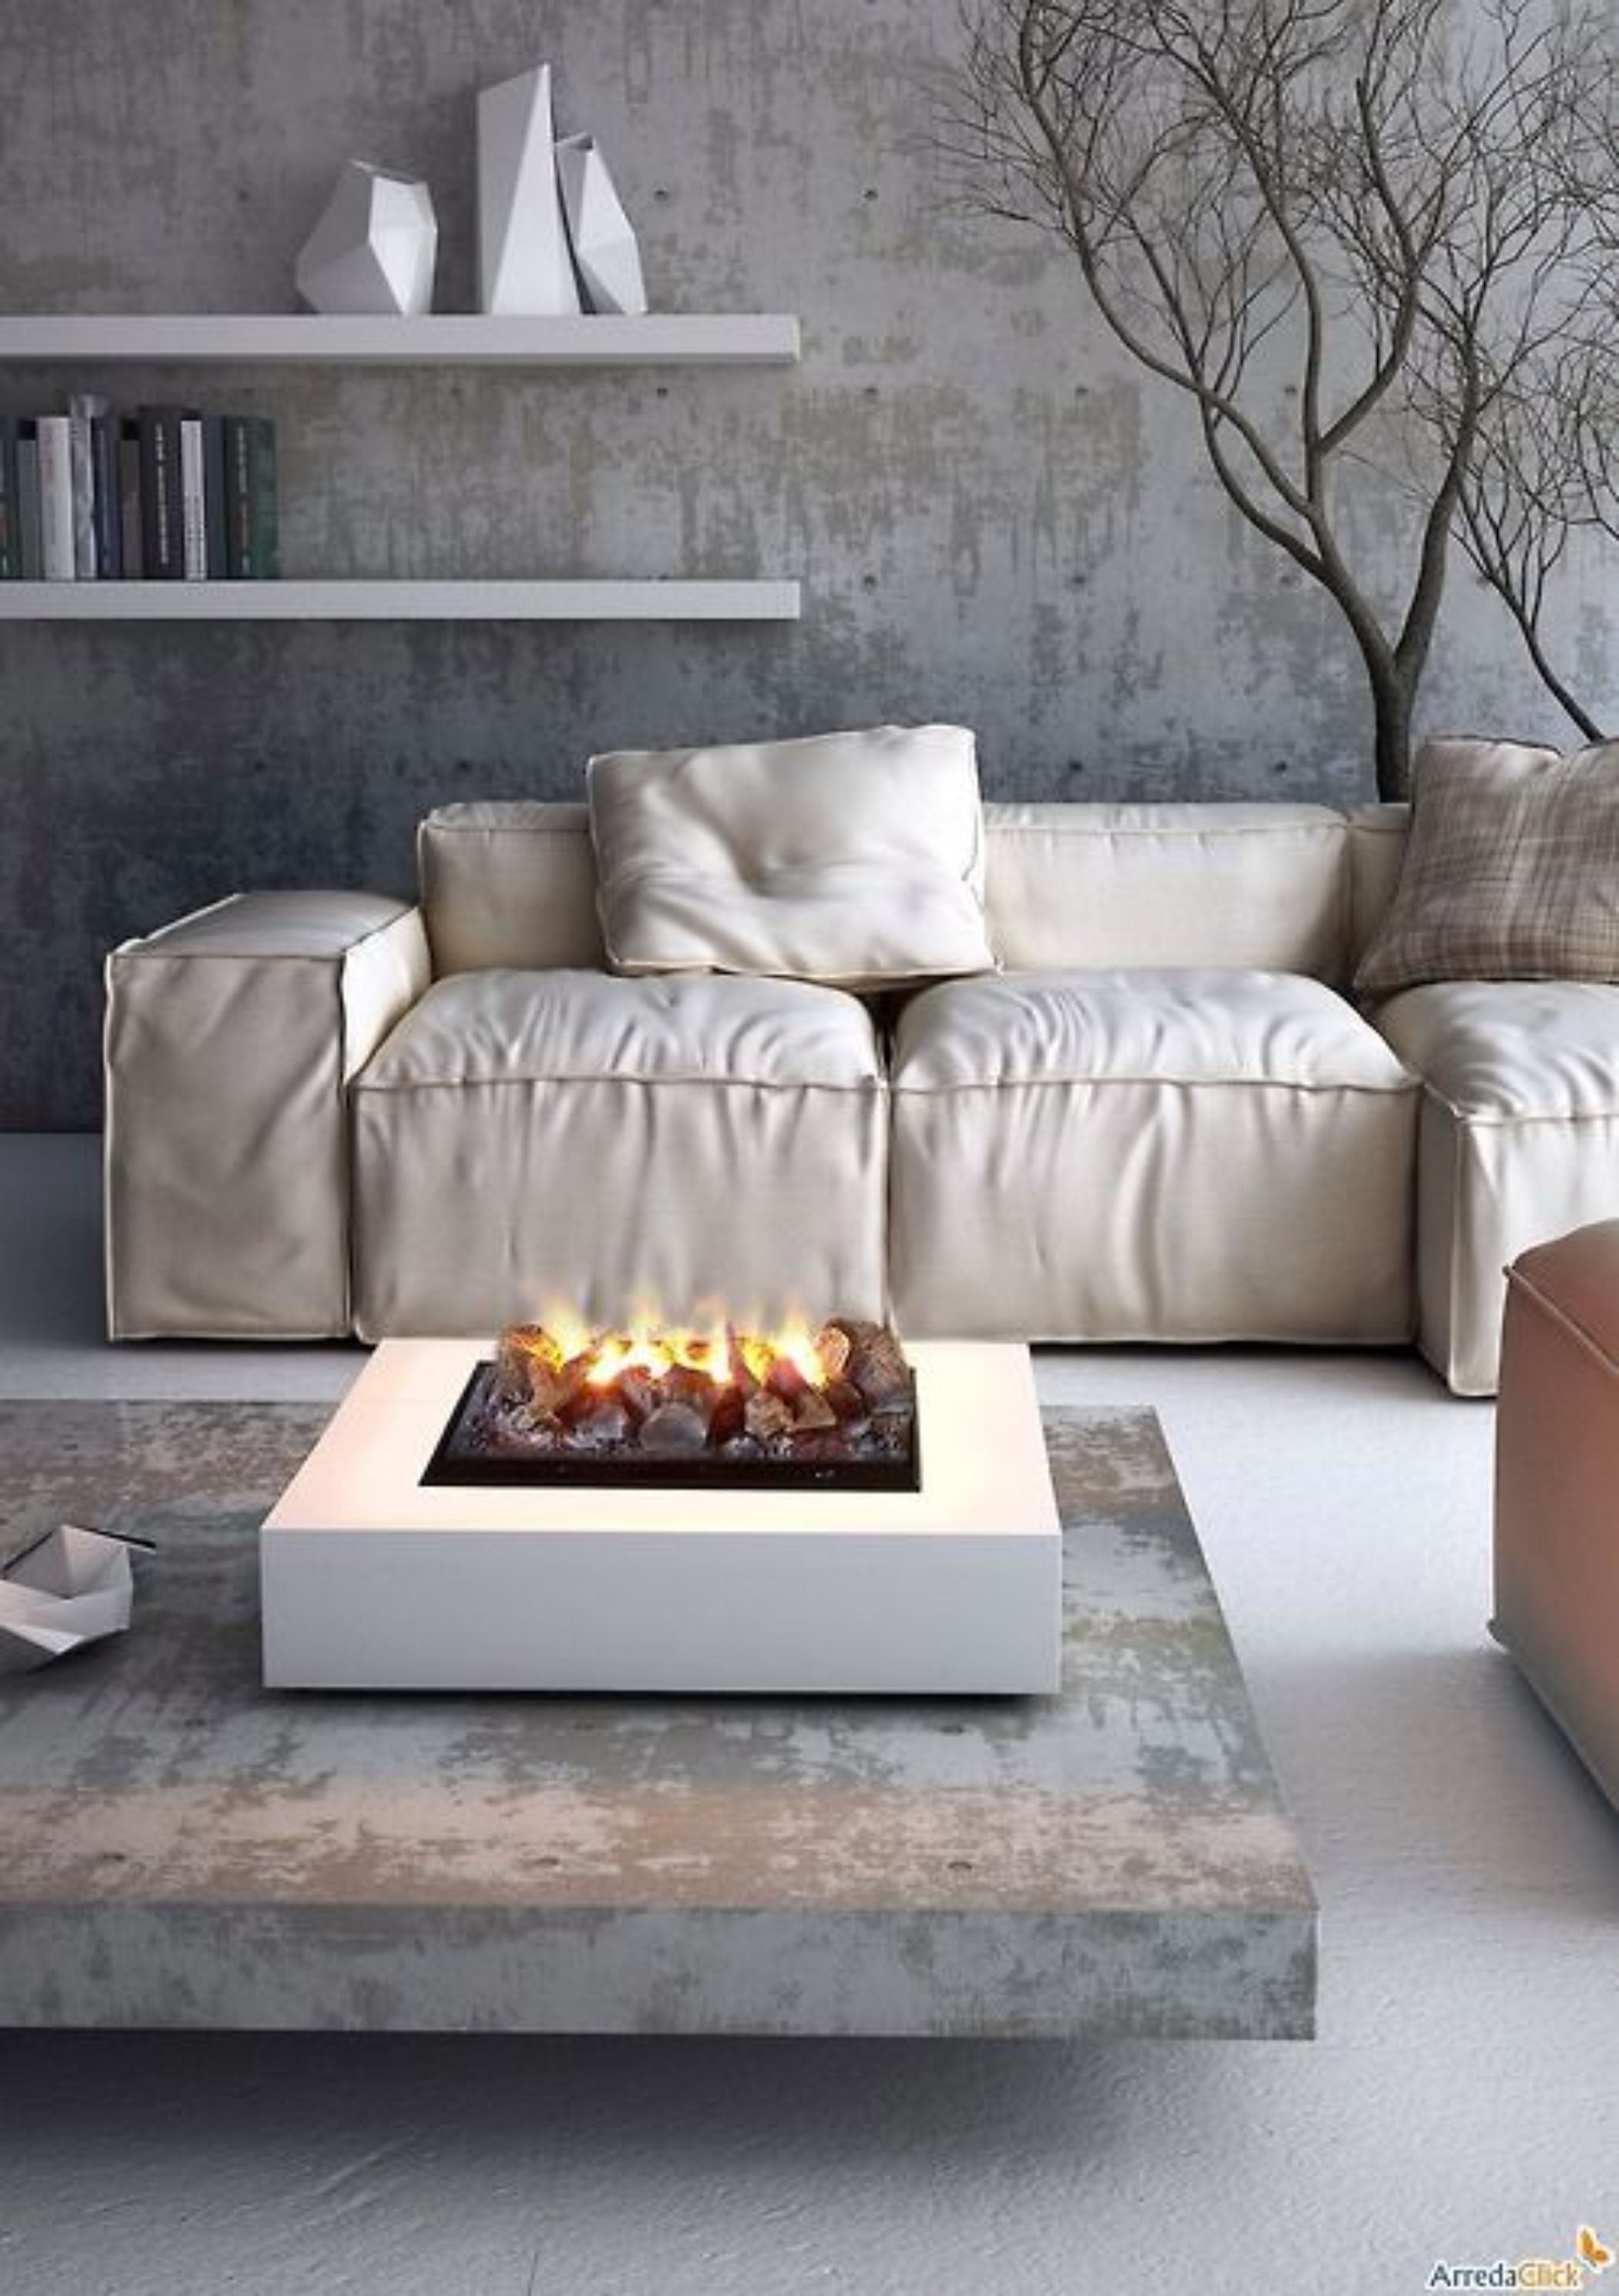 Fire Pit Kits Minimalist Grey Living Room Theme With Fire Pits For